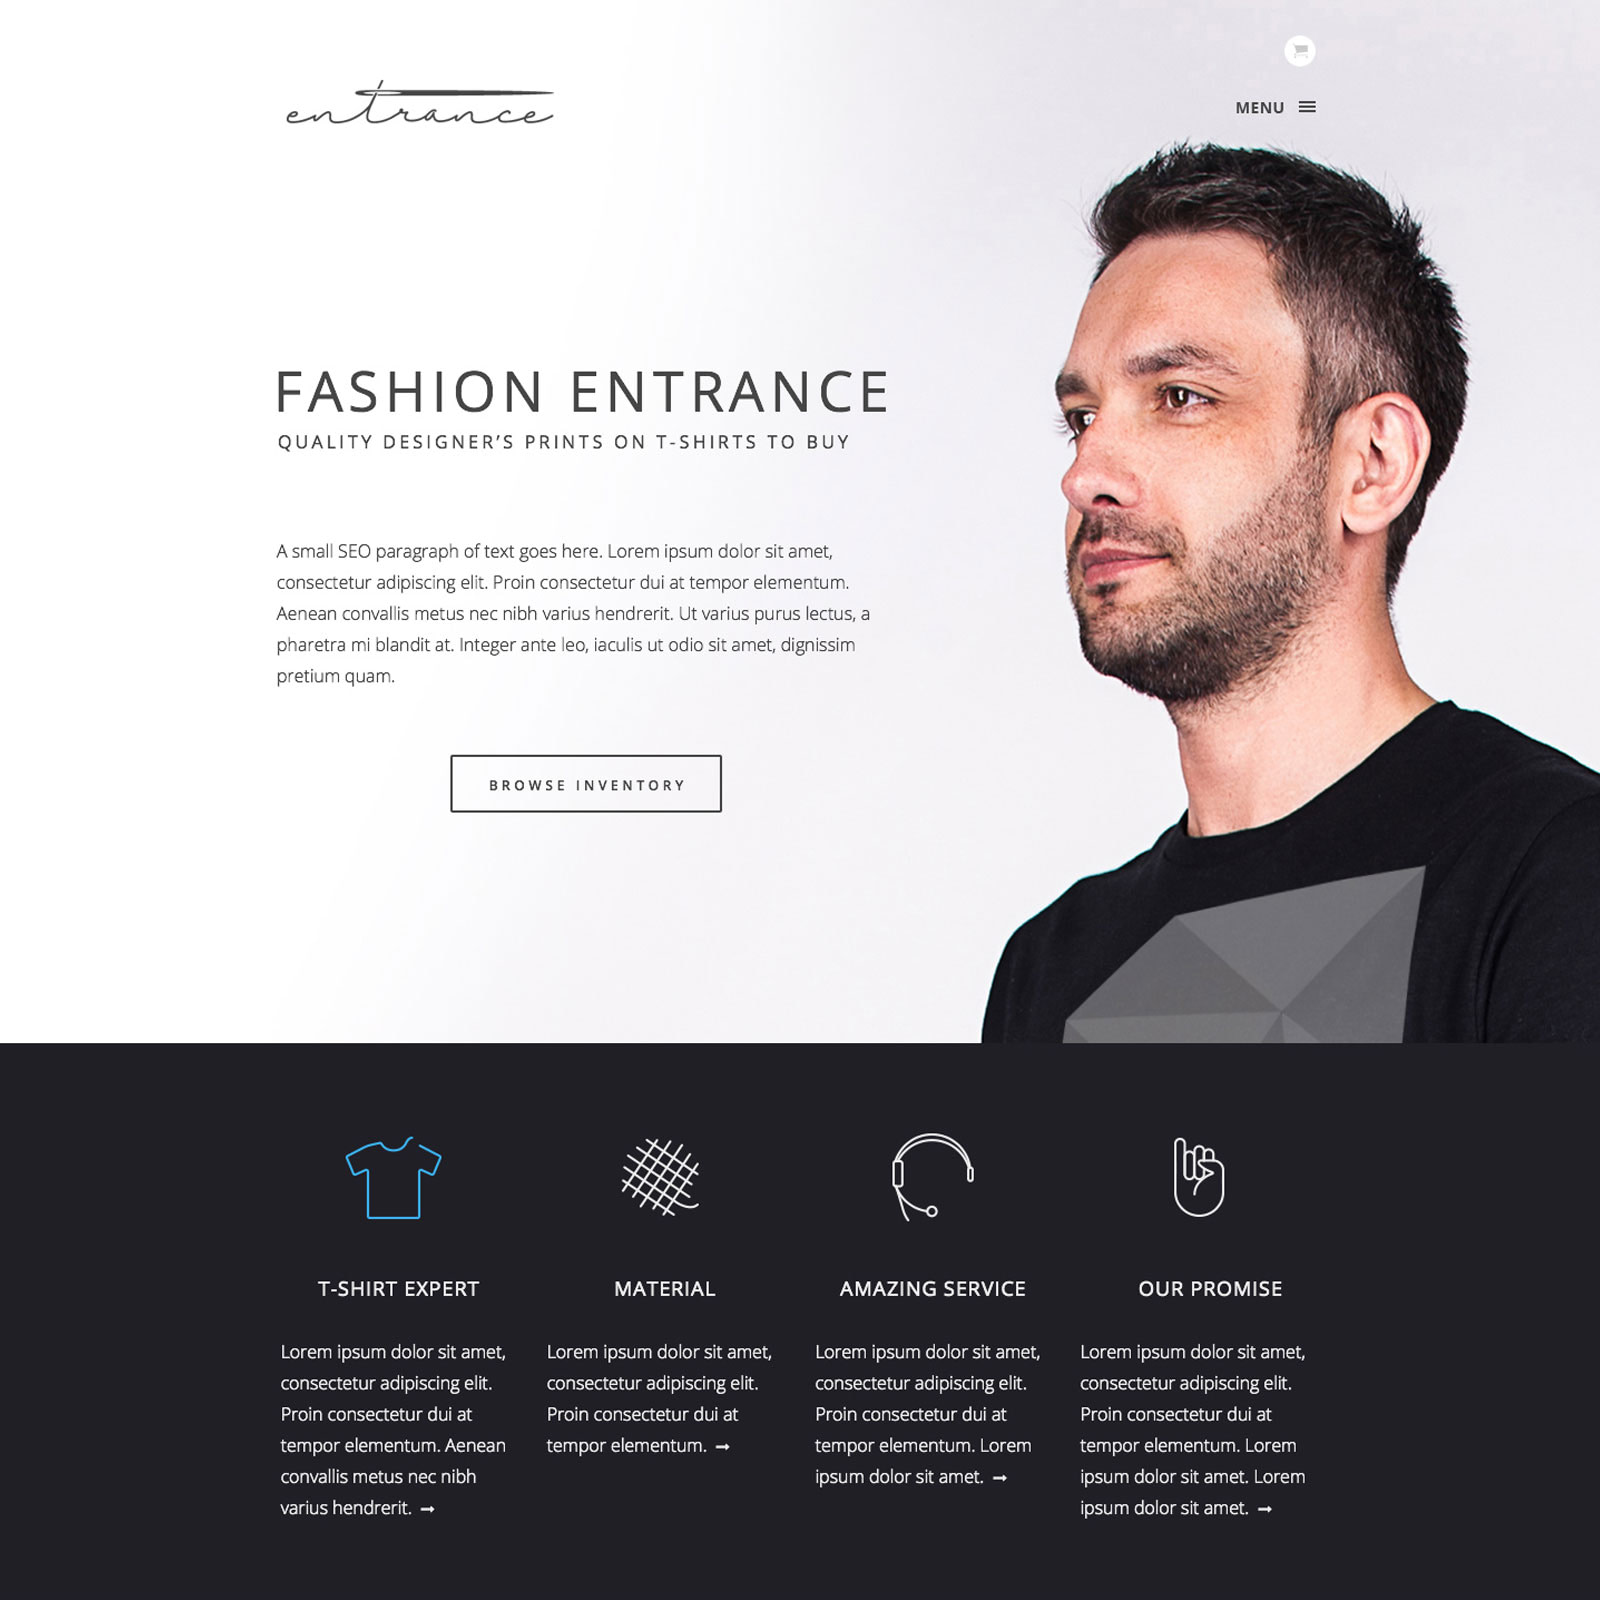 Web design for Fashion Entrance